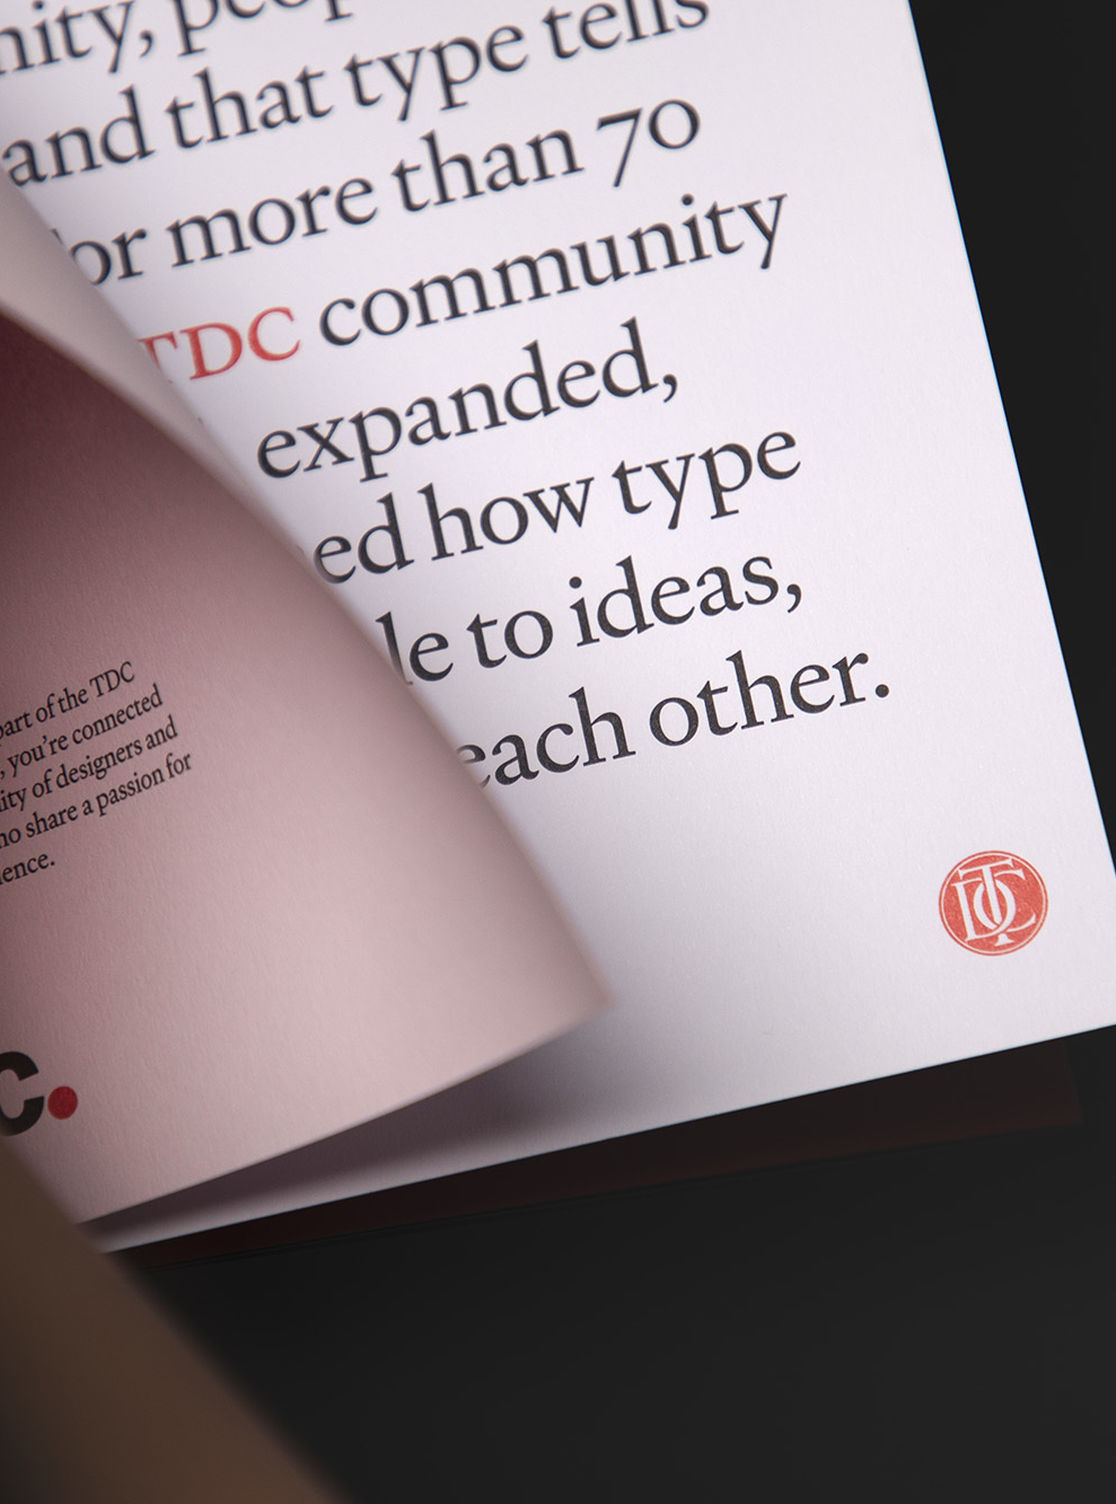 Interior detail of TDC booklet with large paragraph and monogram visible